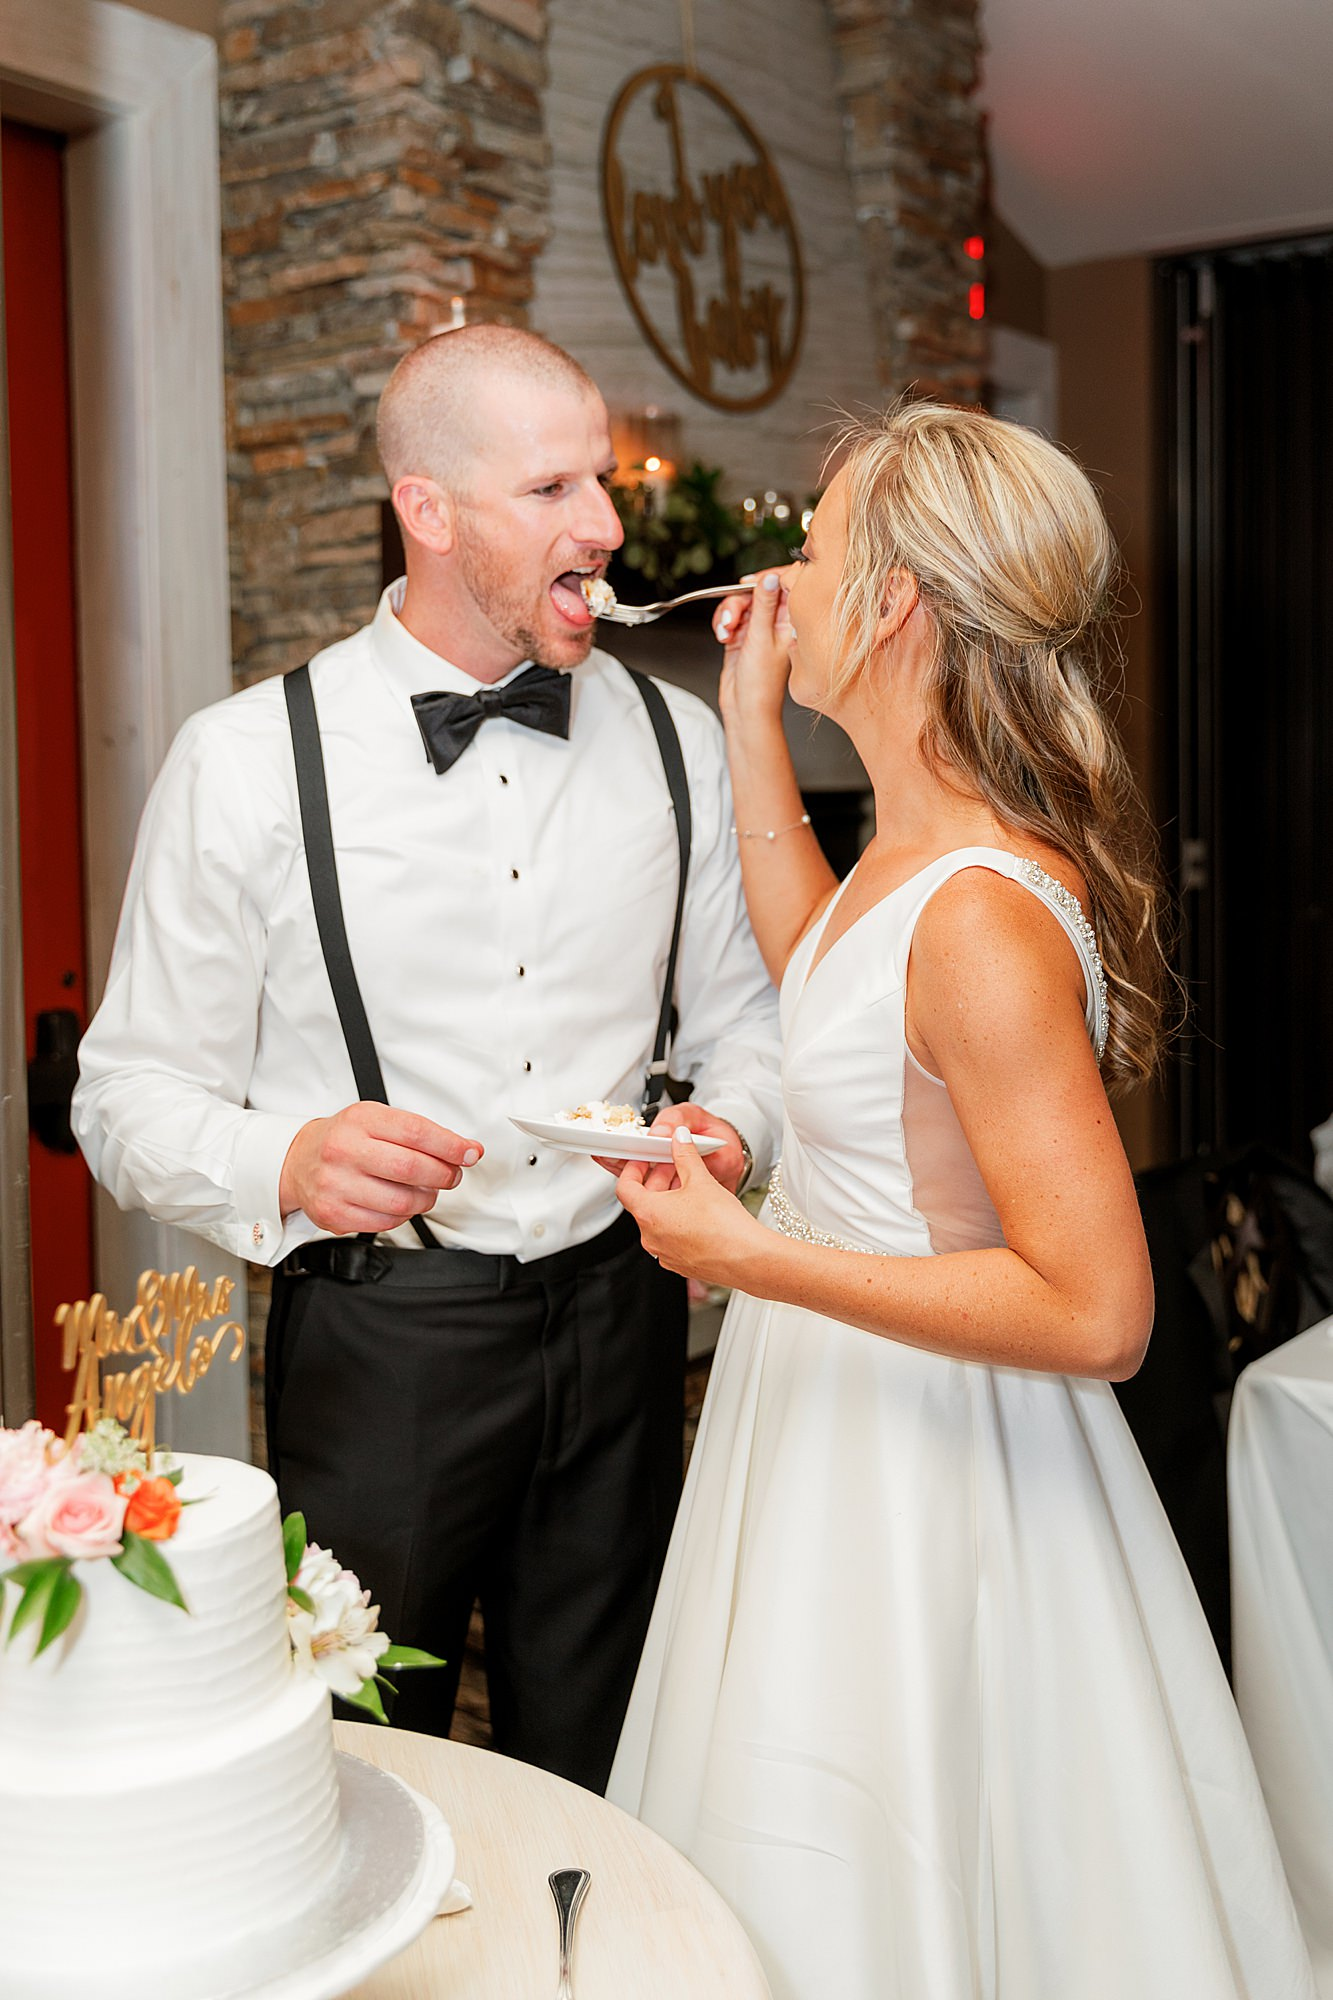 Natural and Vibrant Wedding Photography at the Reeds in Stone Harbor NJ by Magdalena Studios 0069